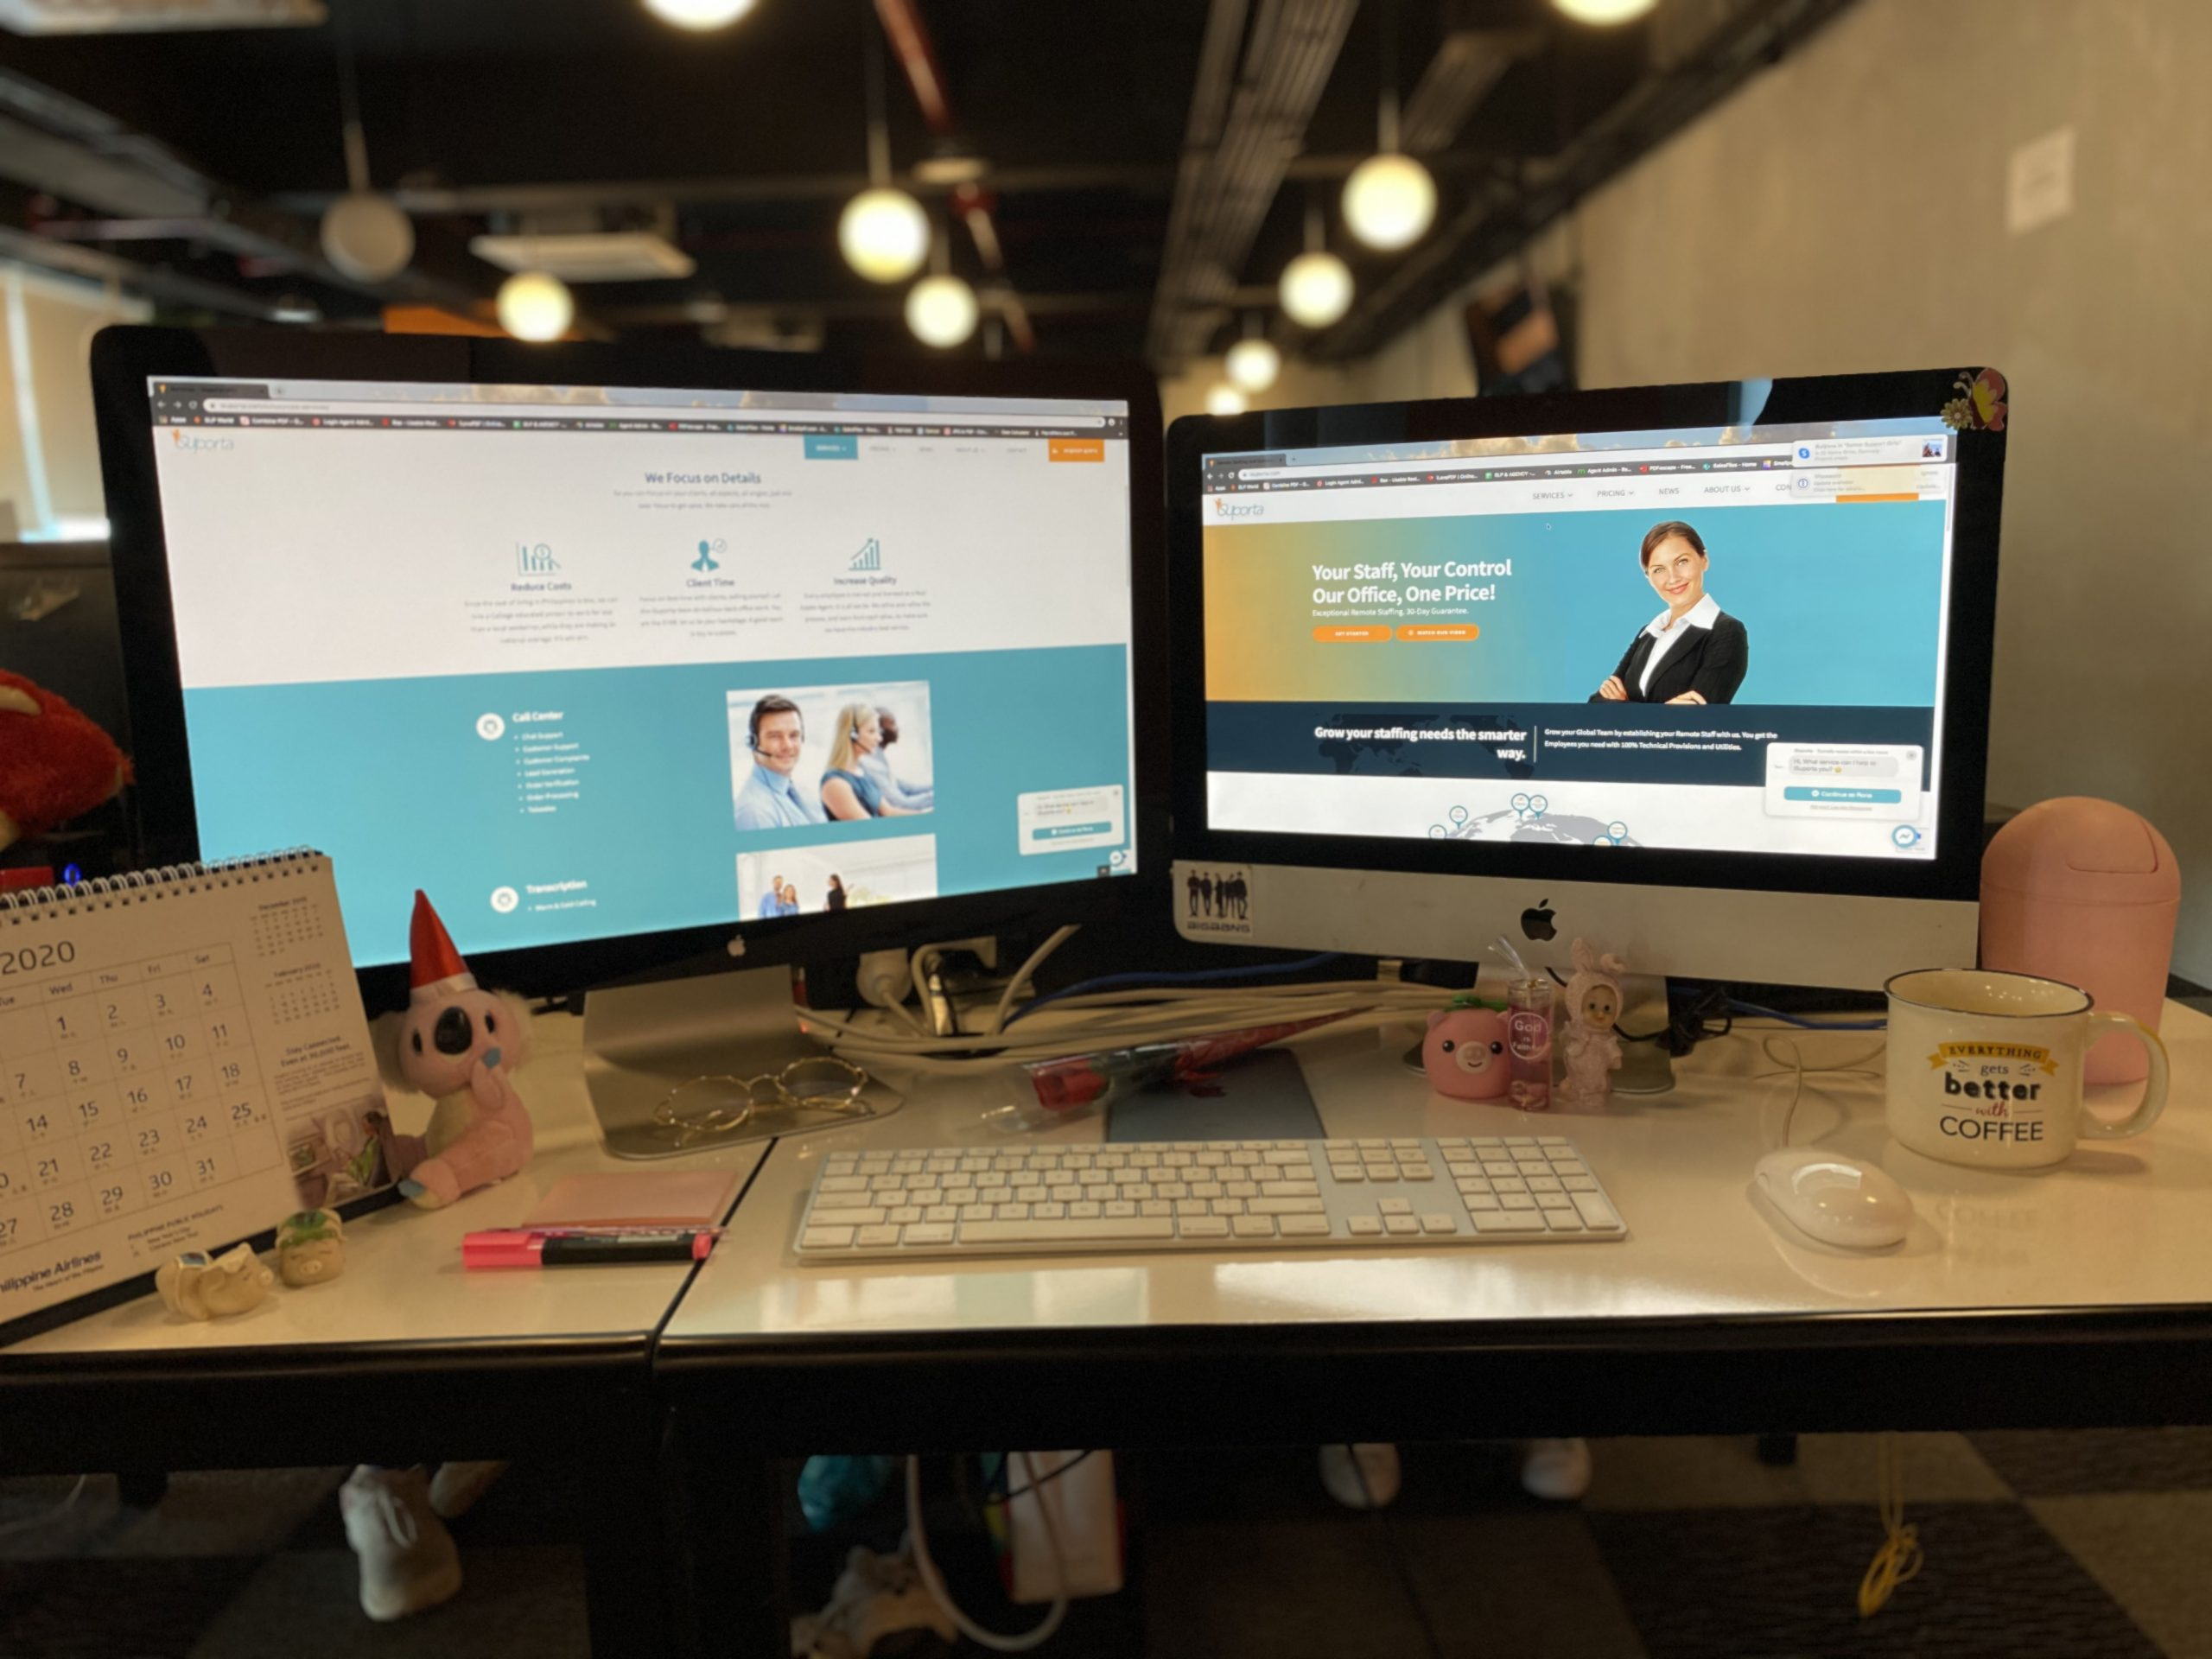 2 Computer Monitors in a Remote Office